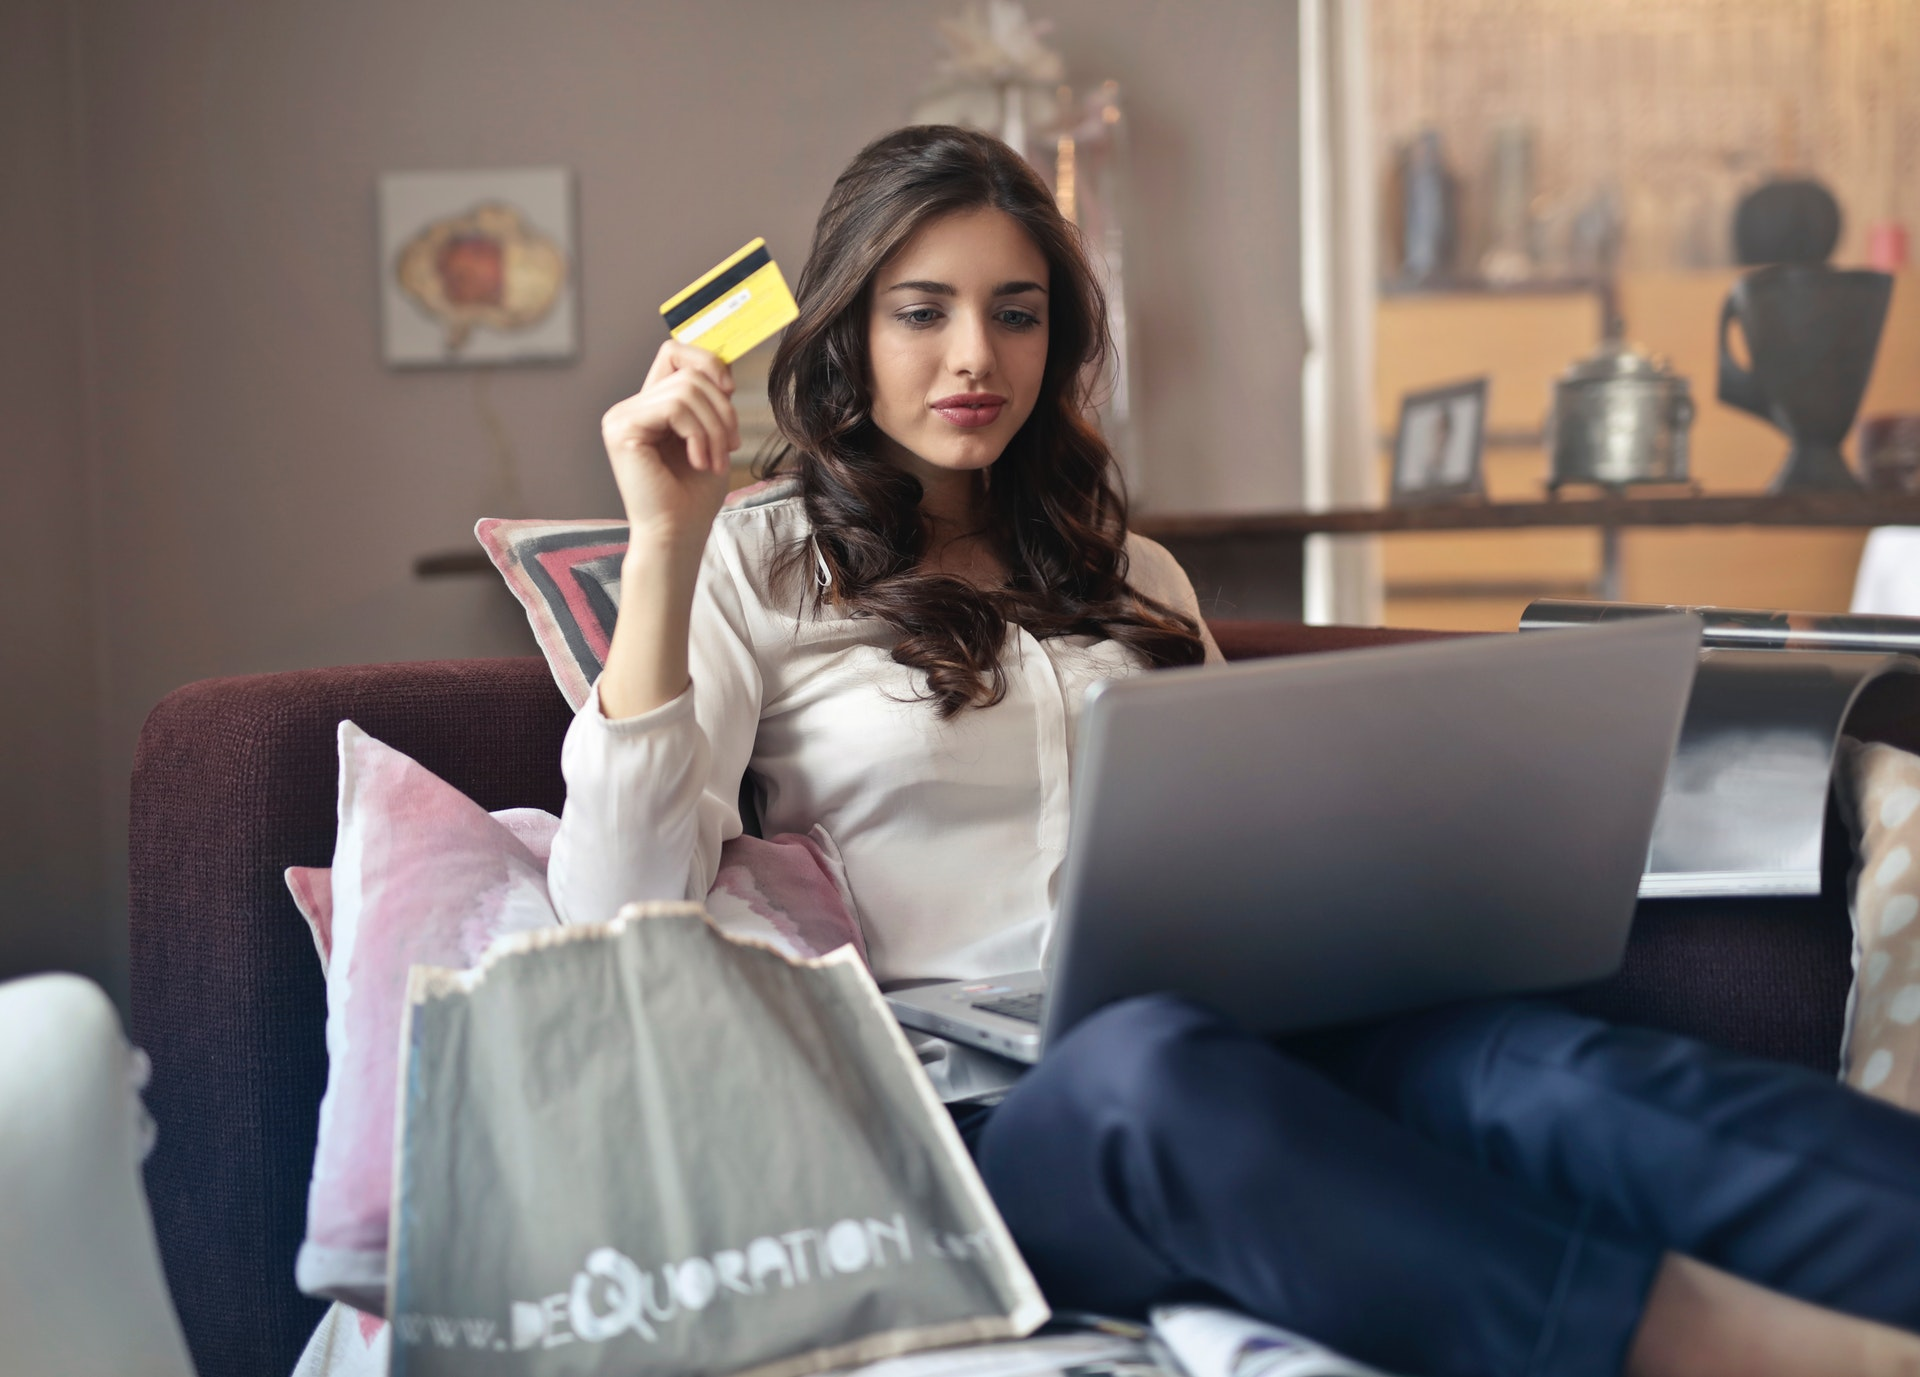 Beautiful-Girl-Shopping-Online-And-Getting-Cash-Back